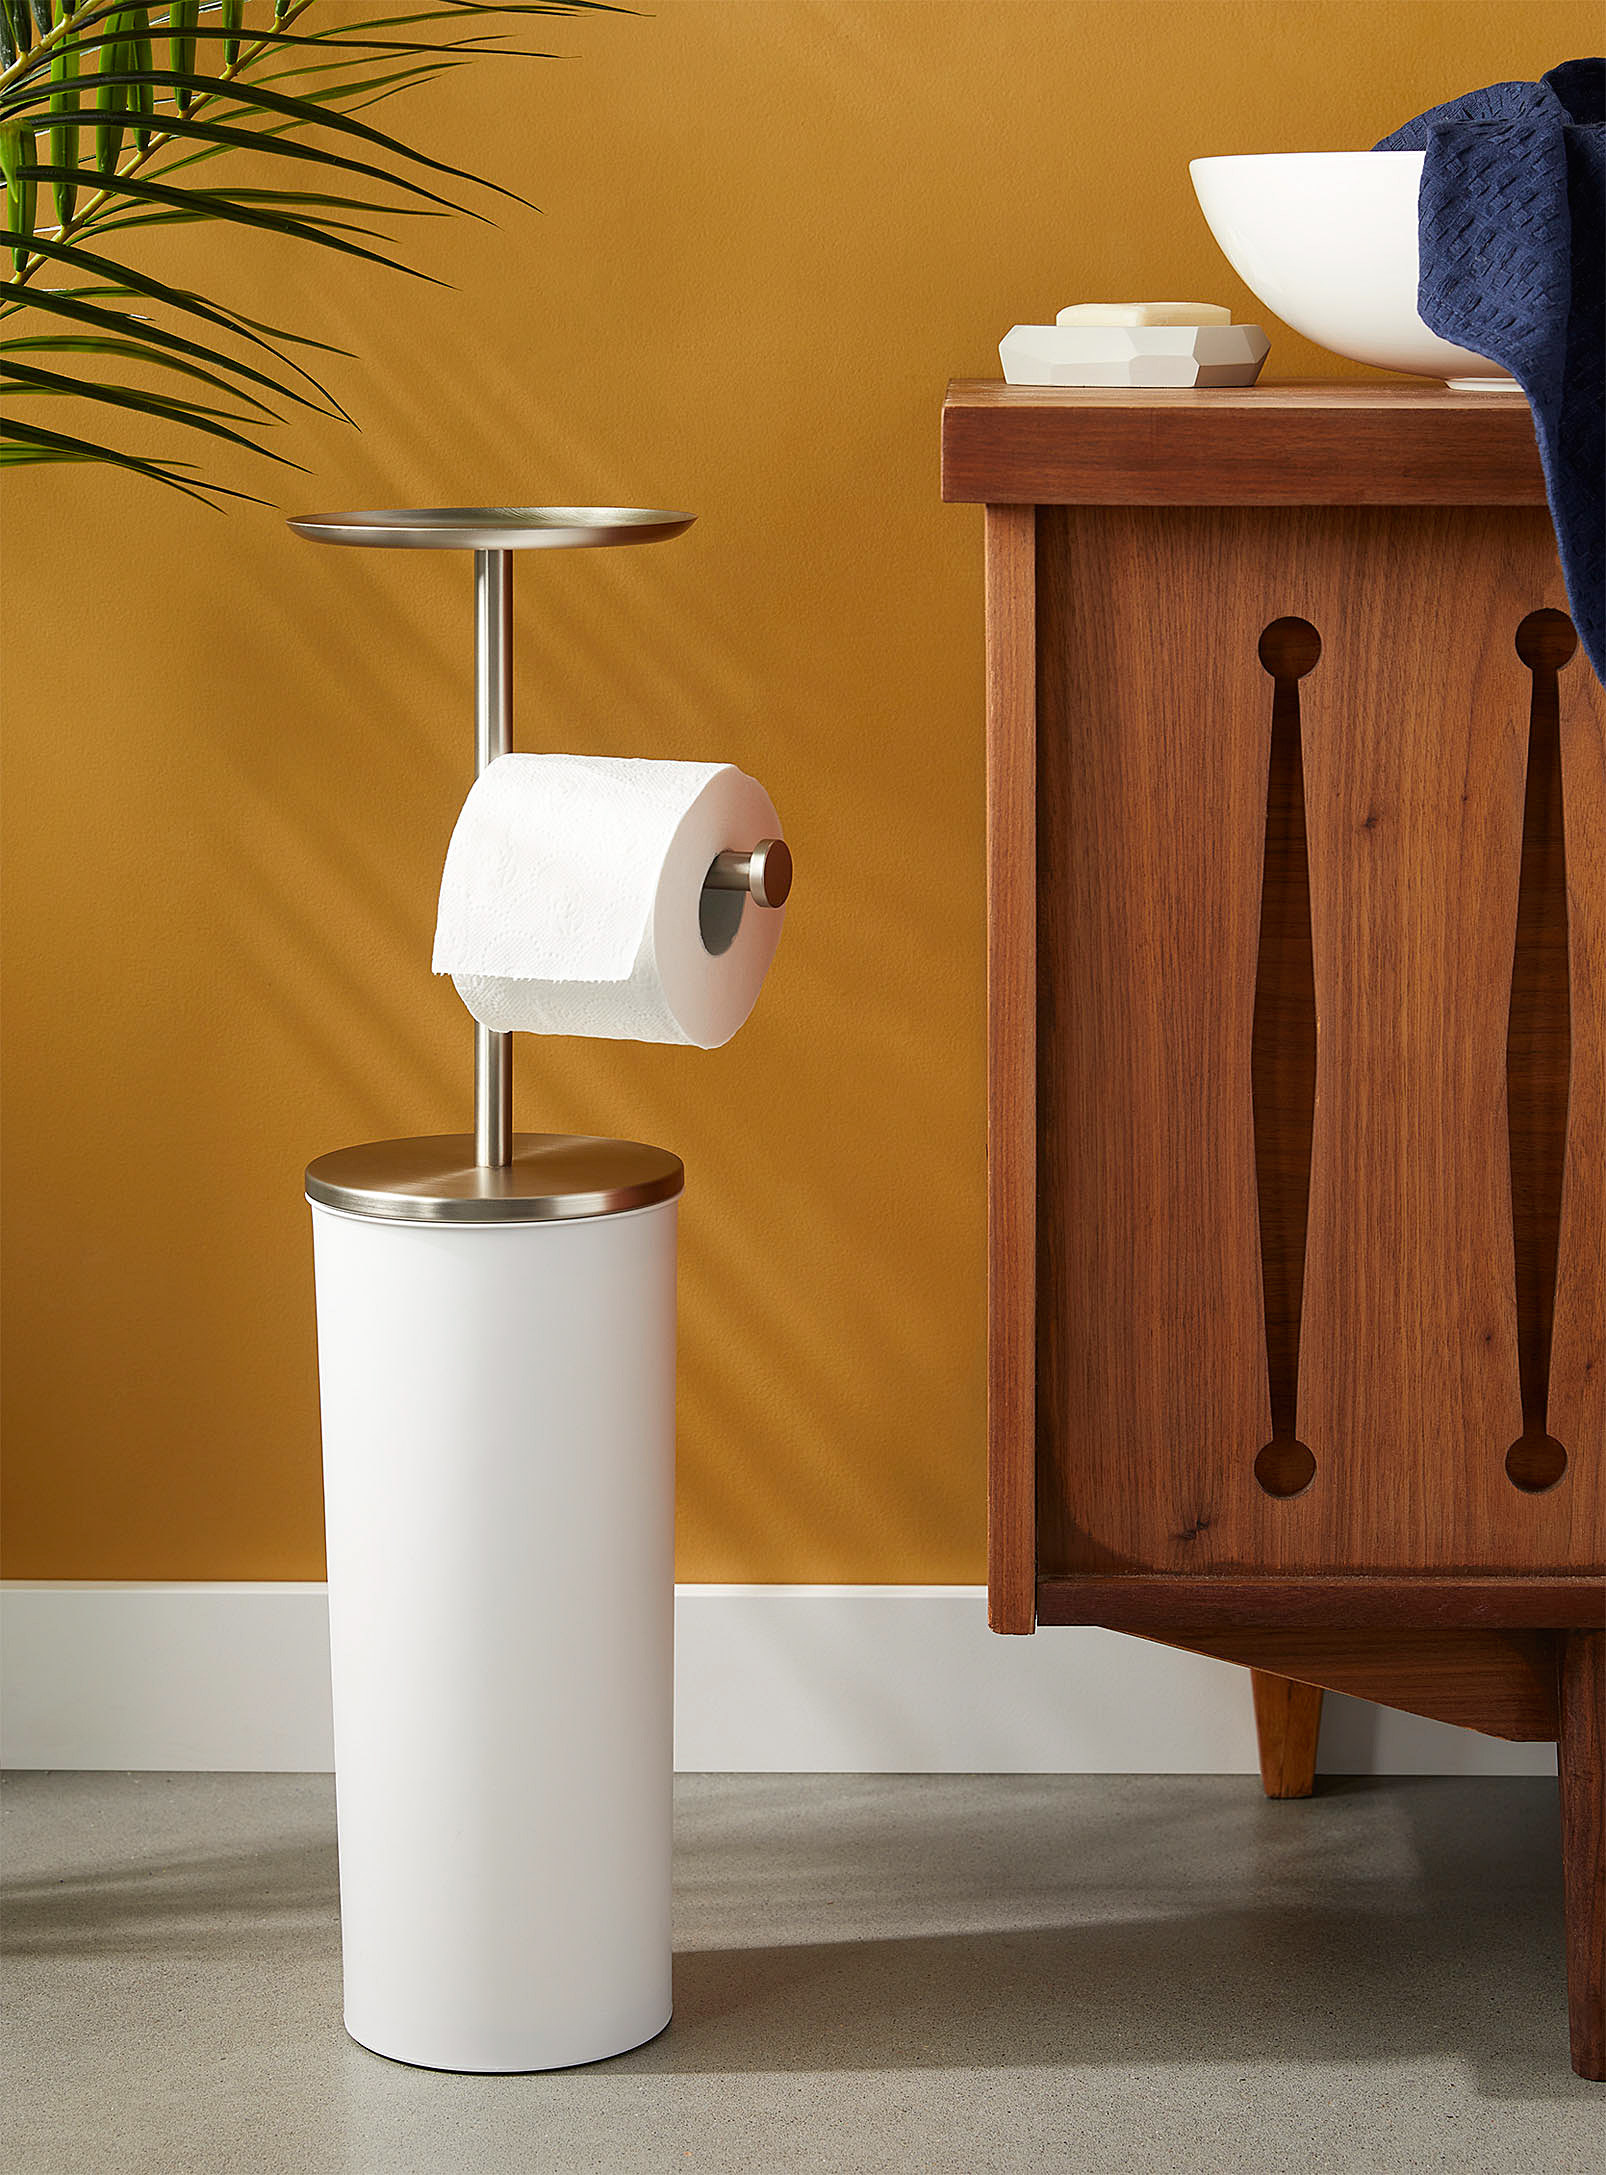 A toilet paper stand with a little tray attached to the top